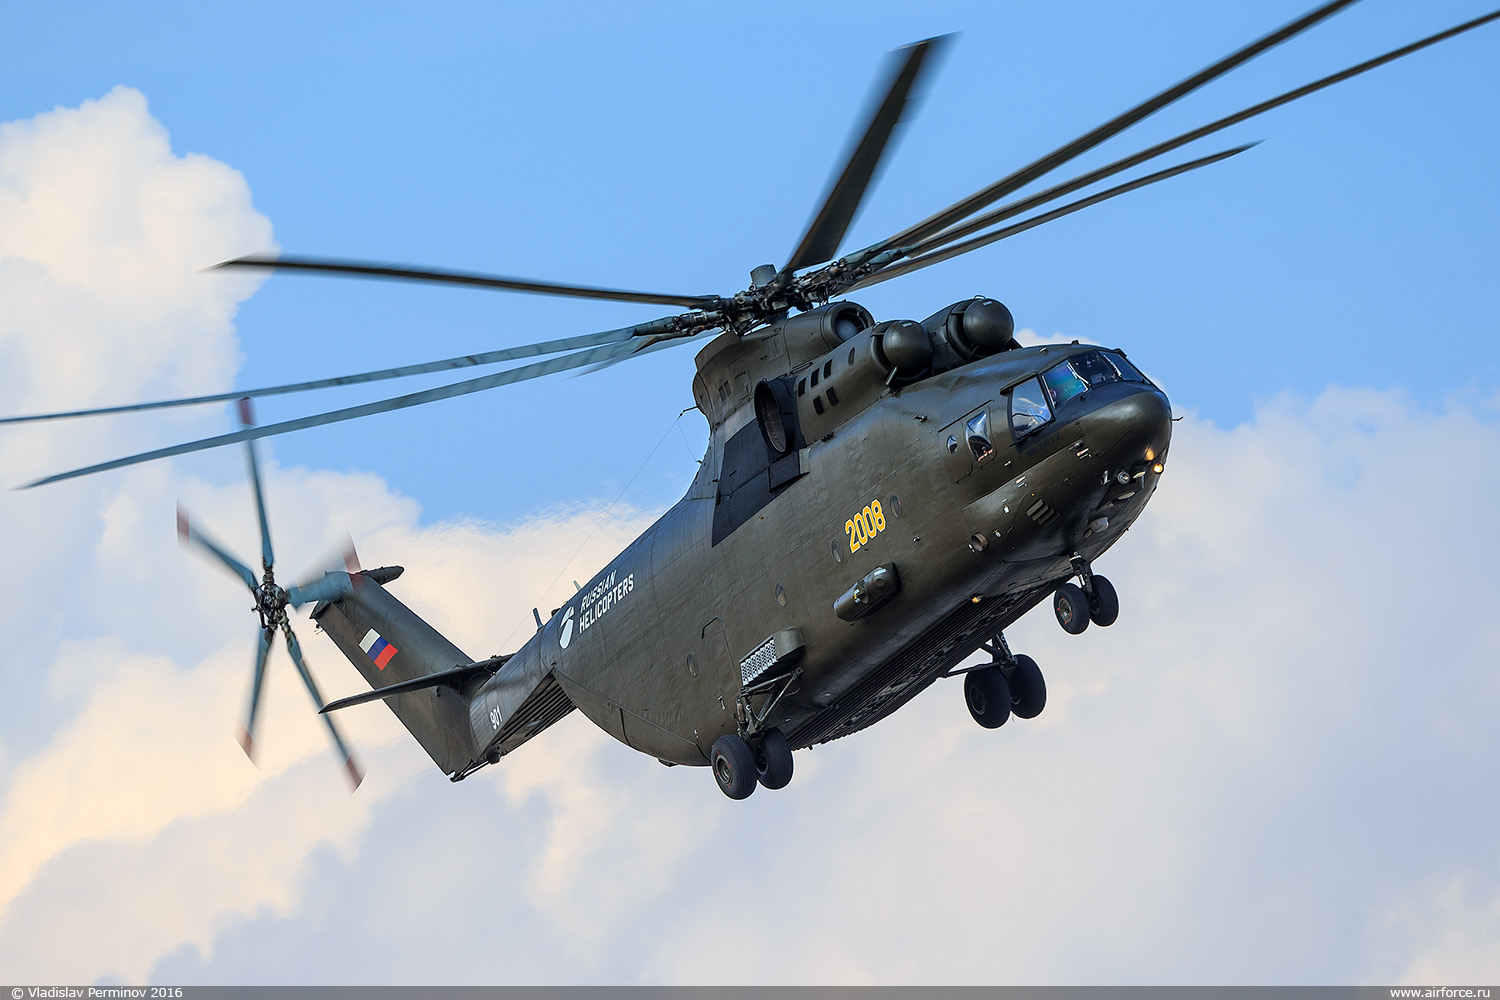 http://www.airforce.ru/content/attachments/68716-v-perminov-mi-26t2-901-1500.jpg